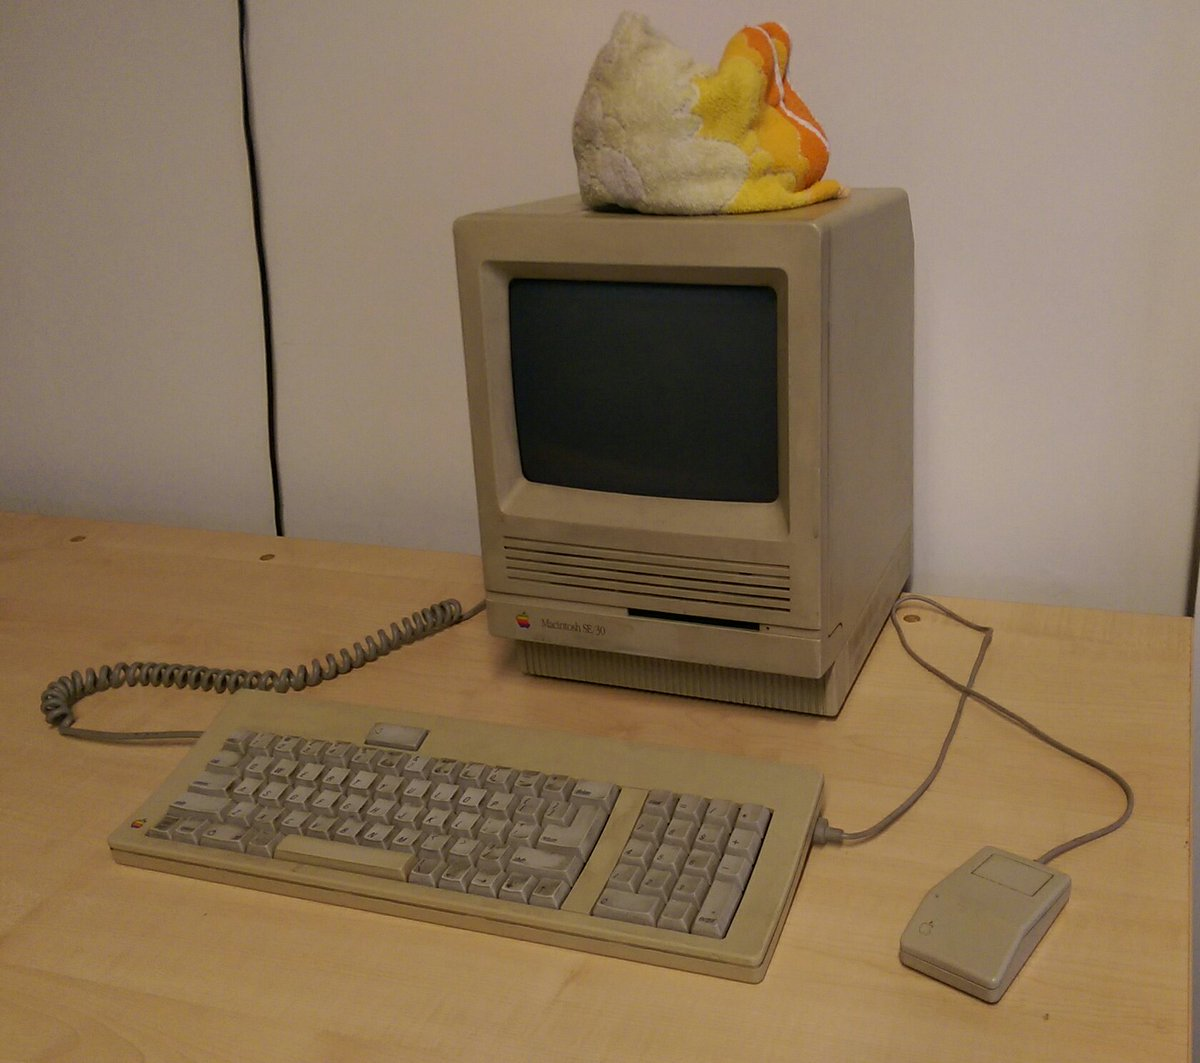 Douglas Adams' Apple Macintosh SE/30 is now at its new home at @computermuseum https://t.co/KqjcxUp61n